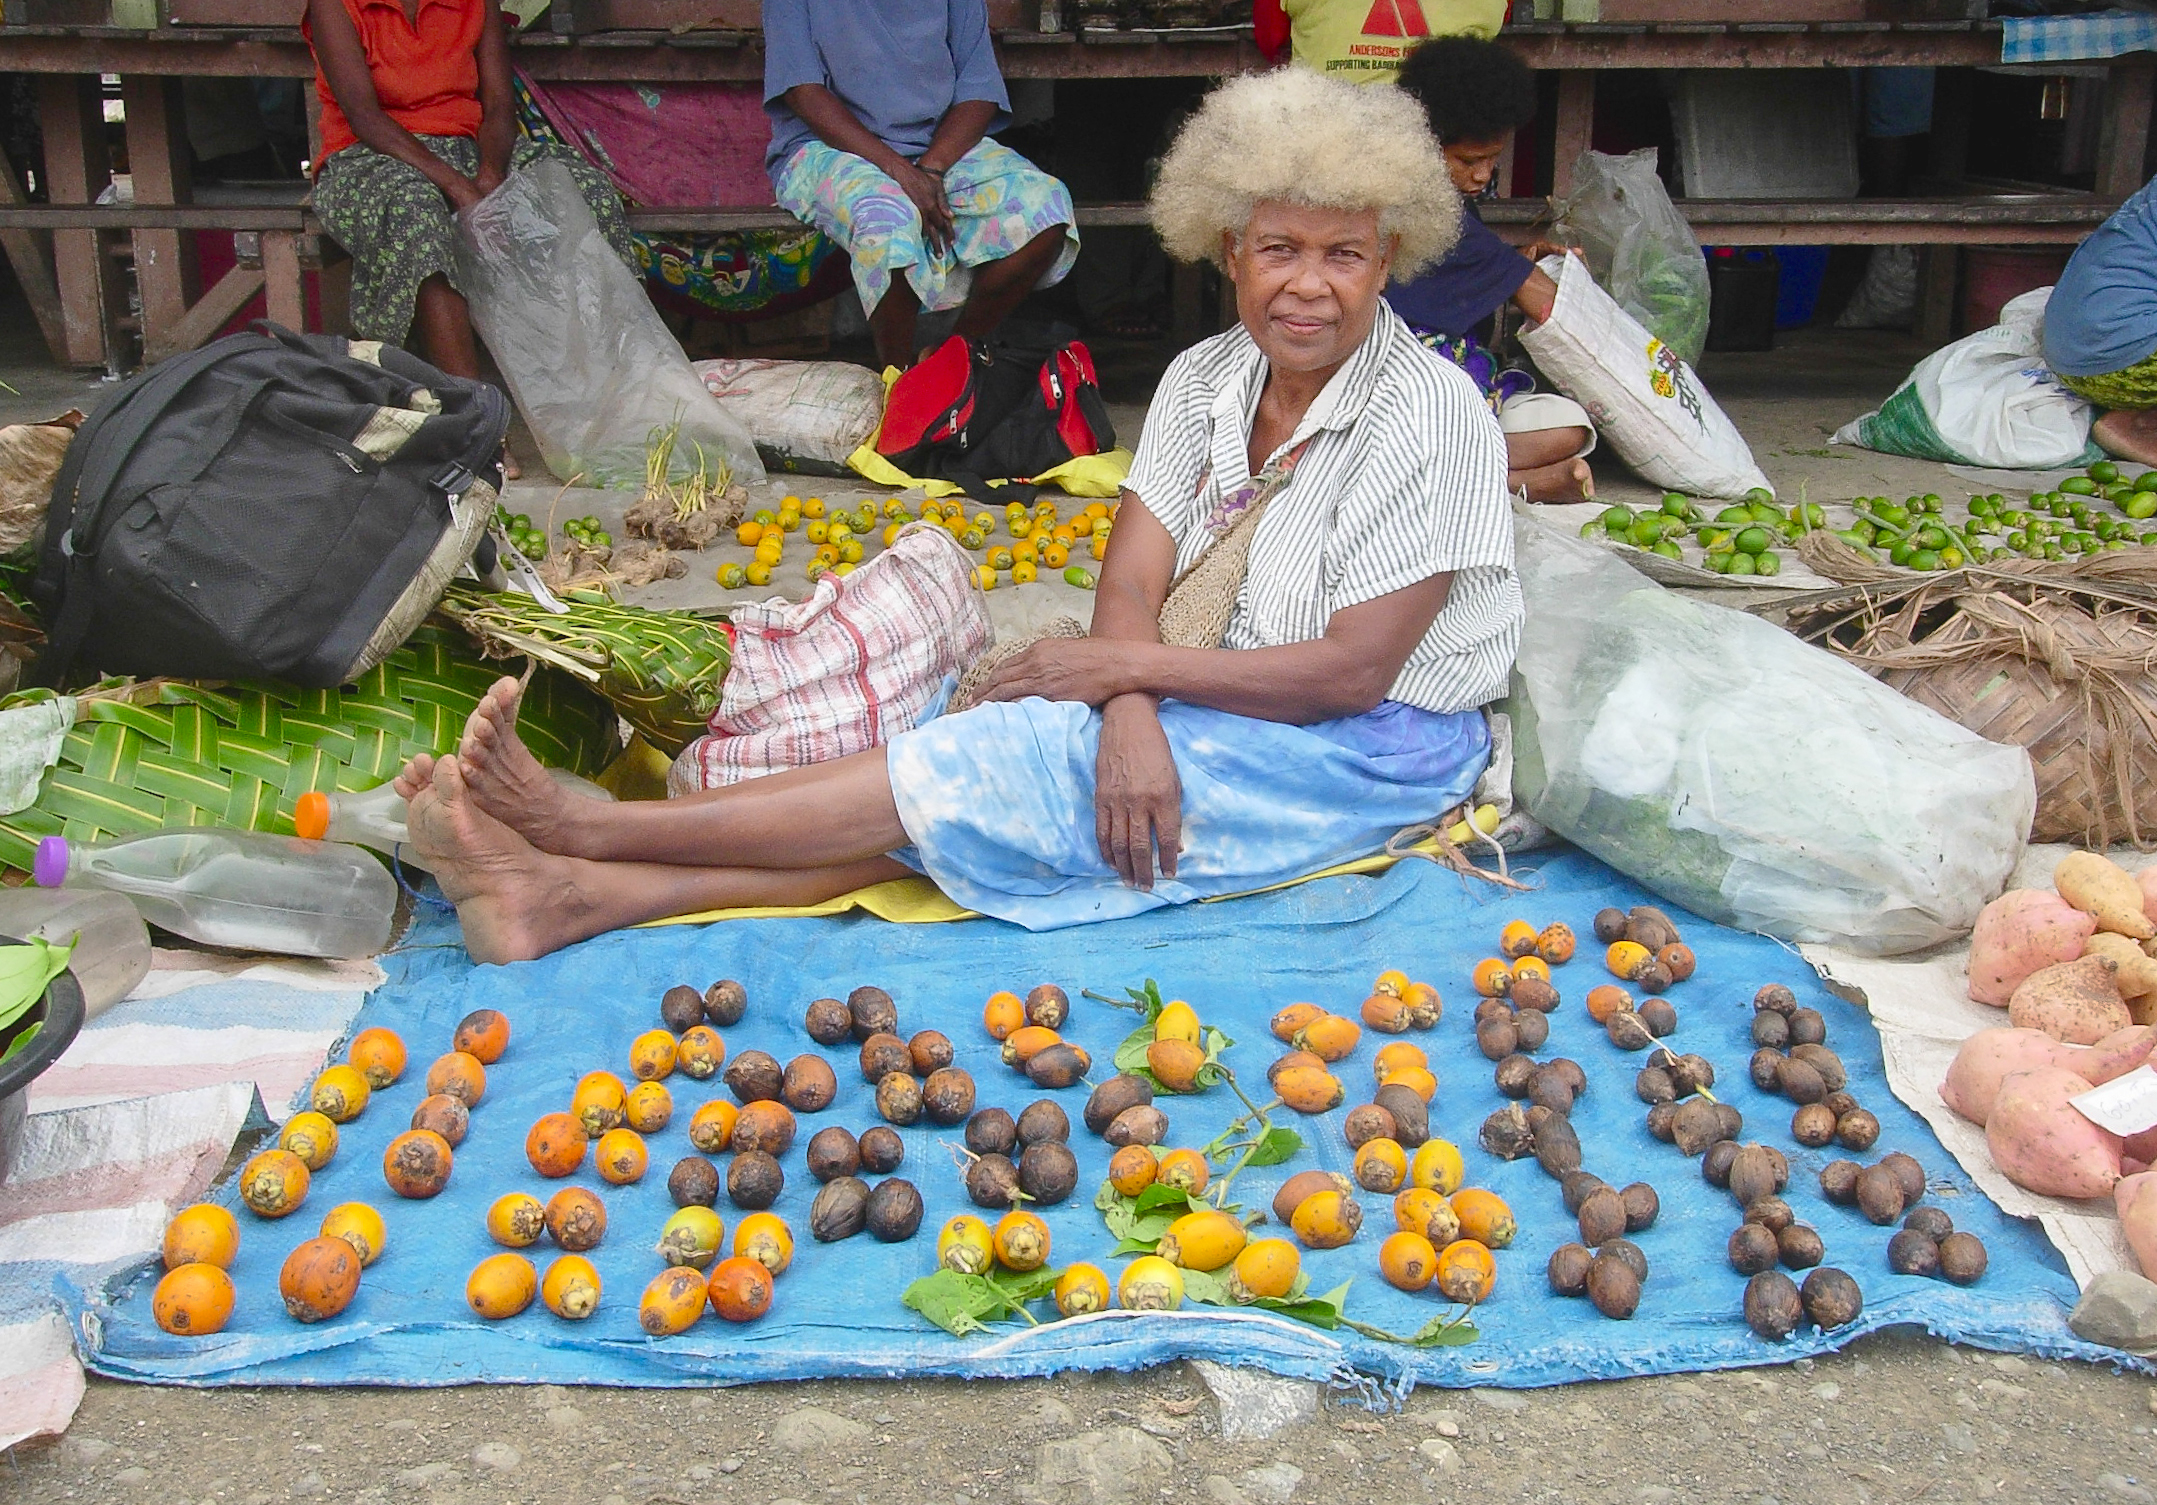 Elderly lady sitting on a blue tarpaulin with betel nuts spread in front of her